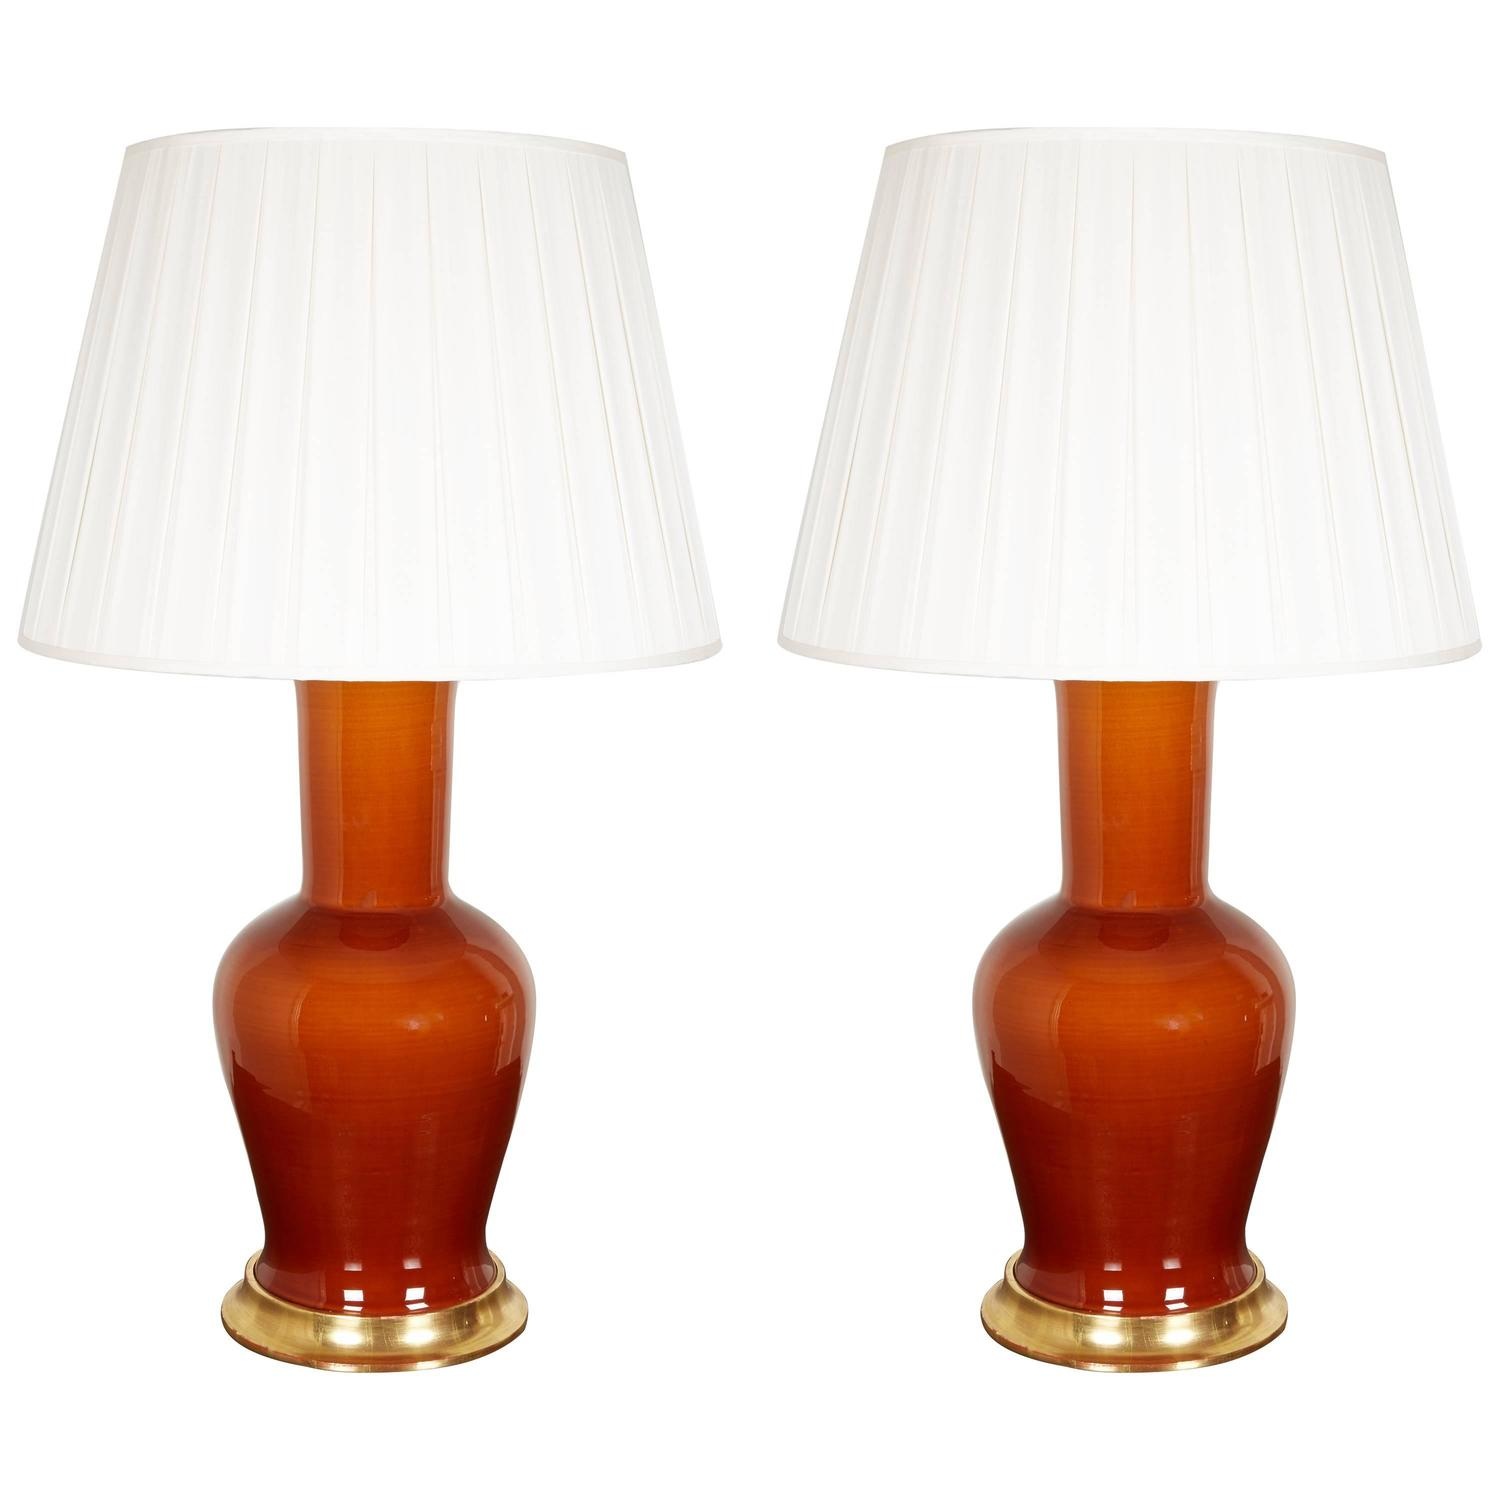 Pair of Christopher Spitzmiller lamps,late-20th century